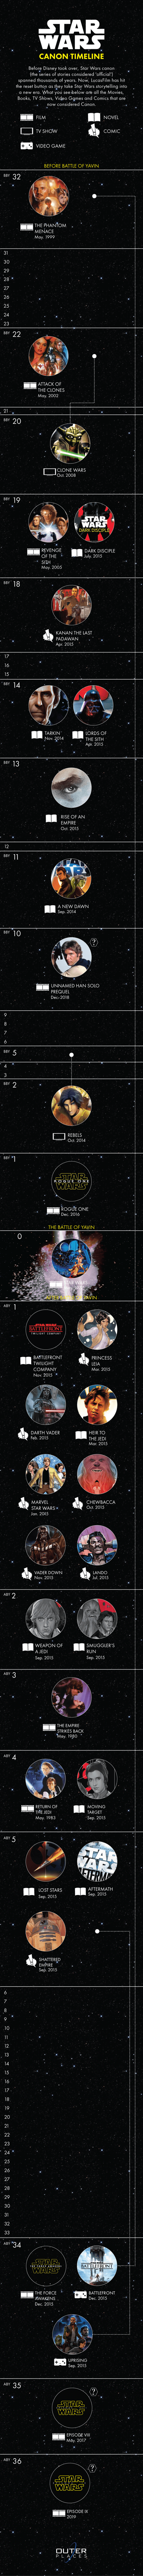 star-wars-timeline-infographic-for-the-new-canon